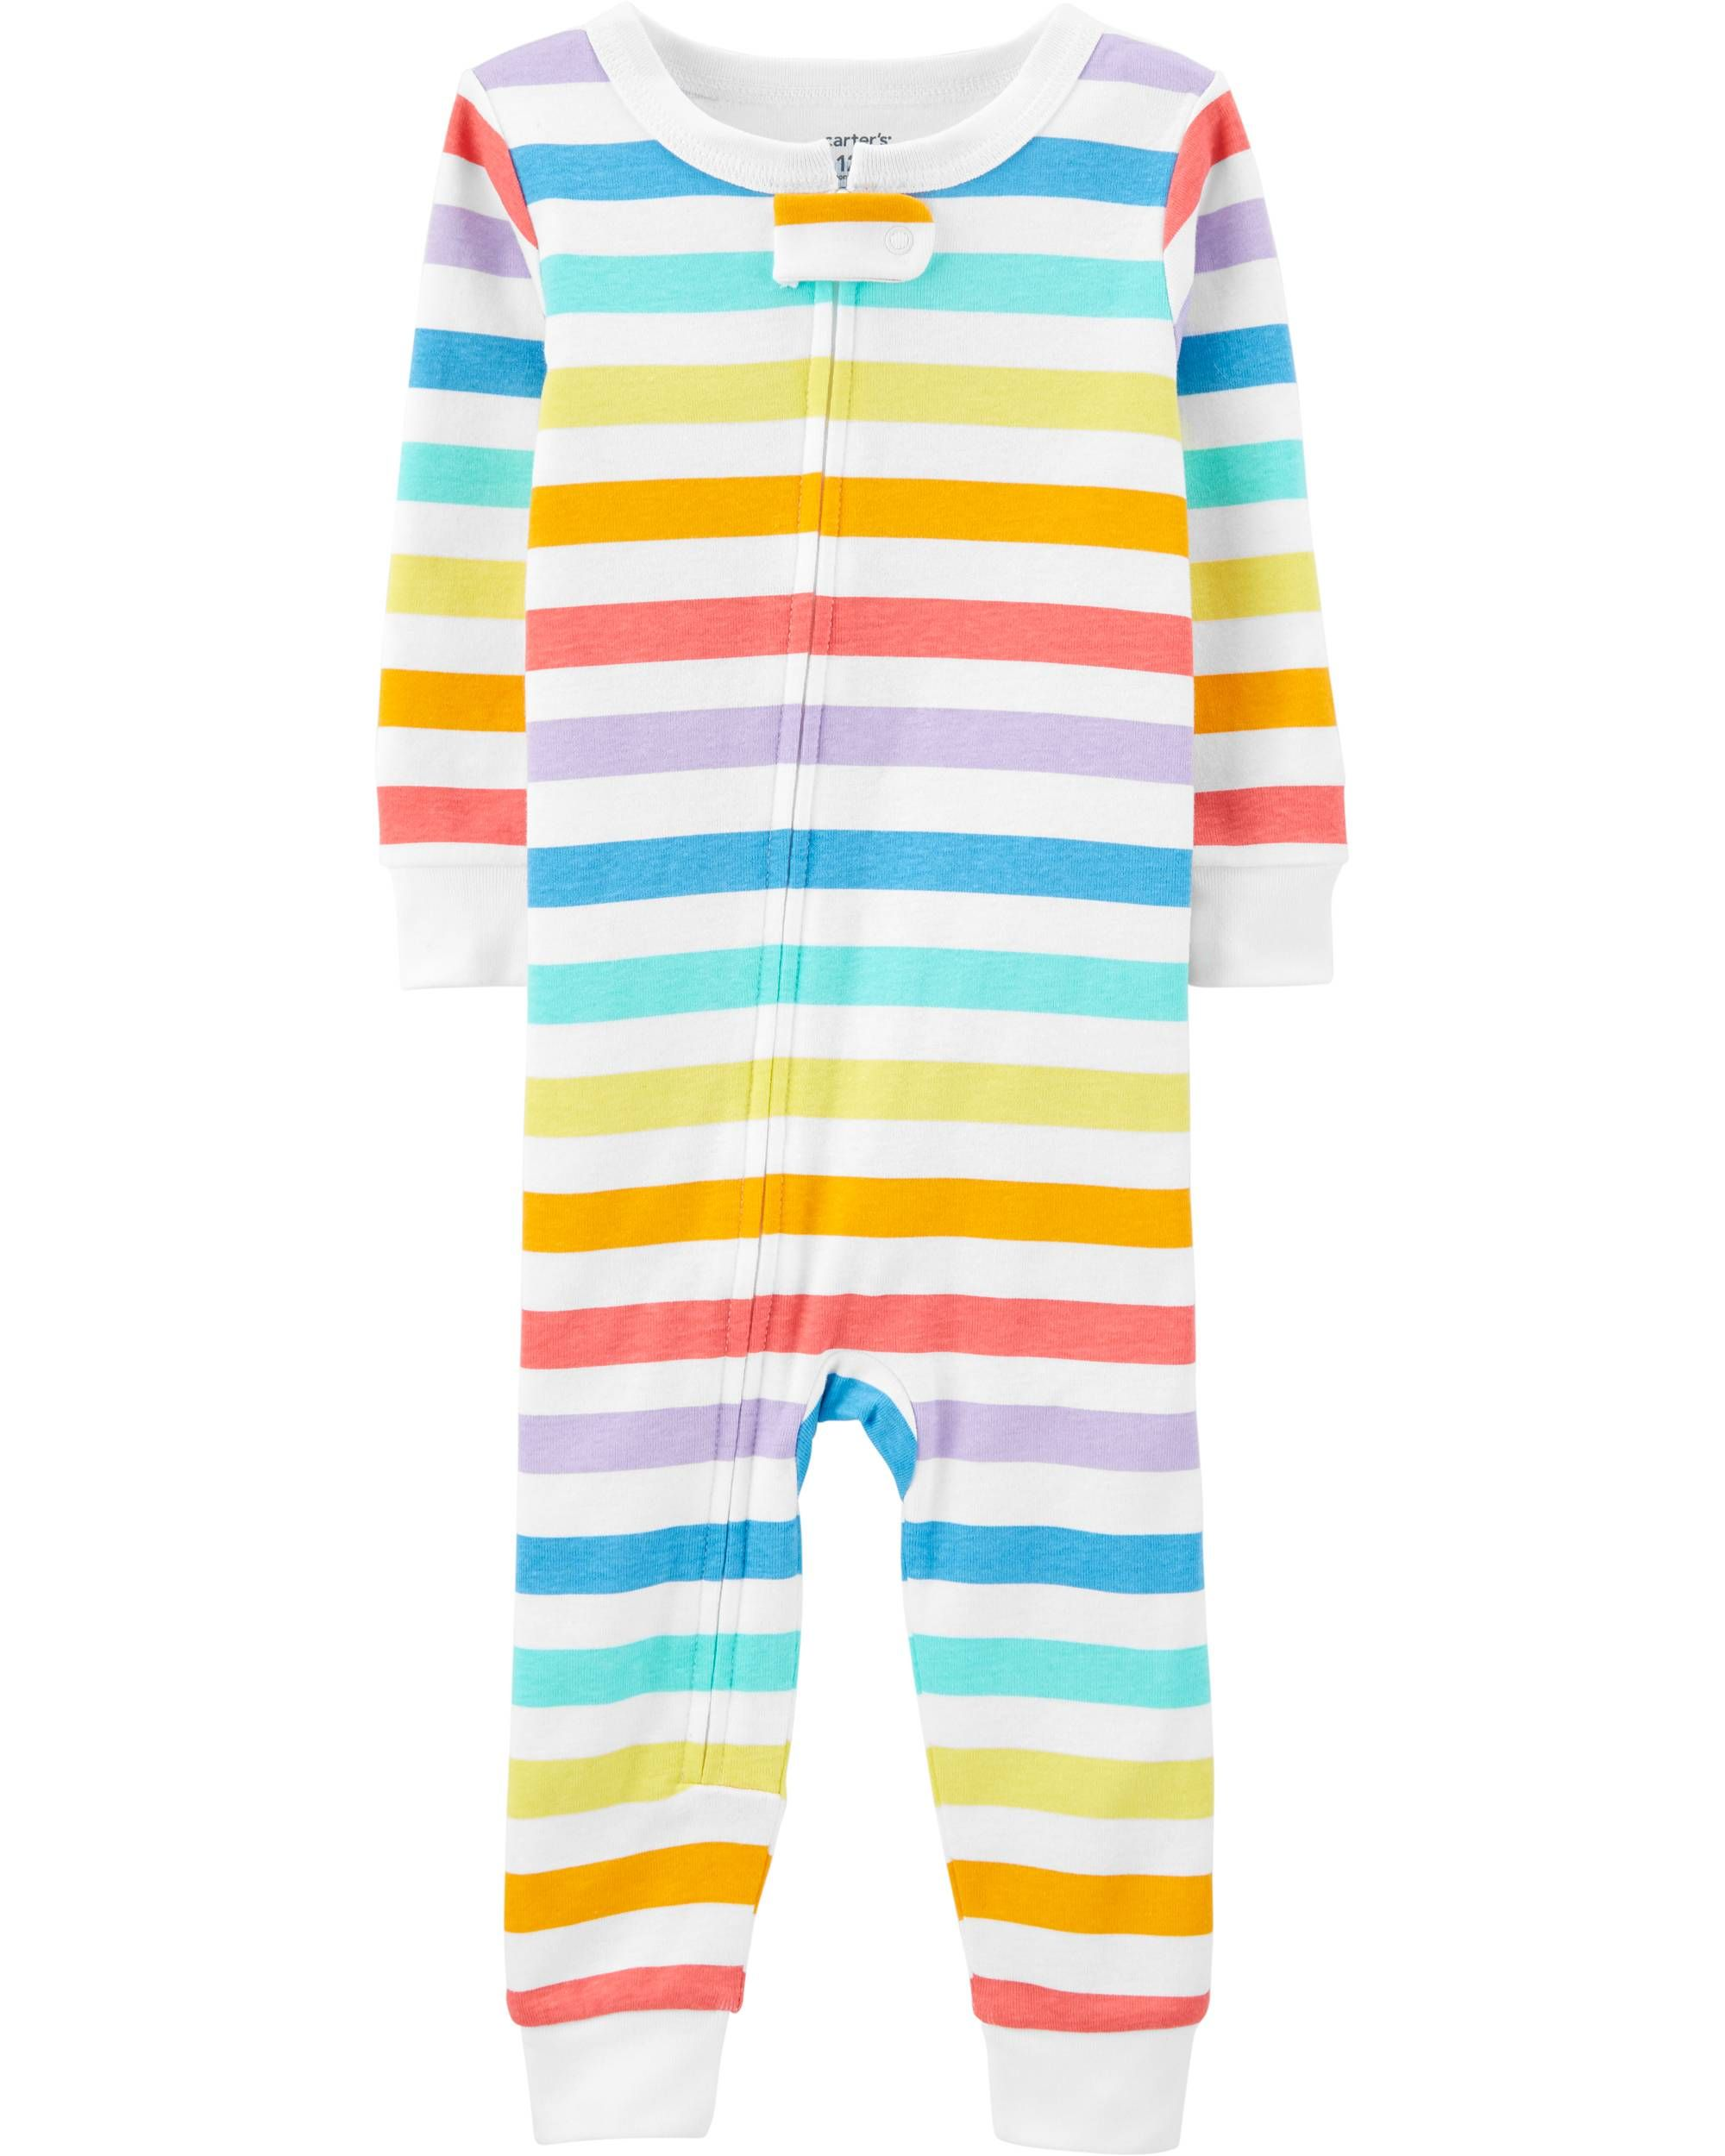 1 Piece 100 Snug Fit Cotton Footless Pjs In 2020 Family Matching Pjs Shopping Outfit Clothing Retail